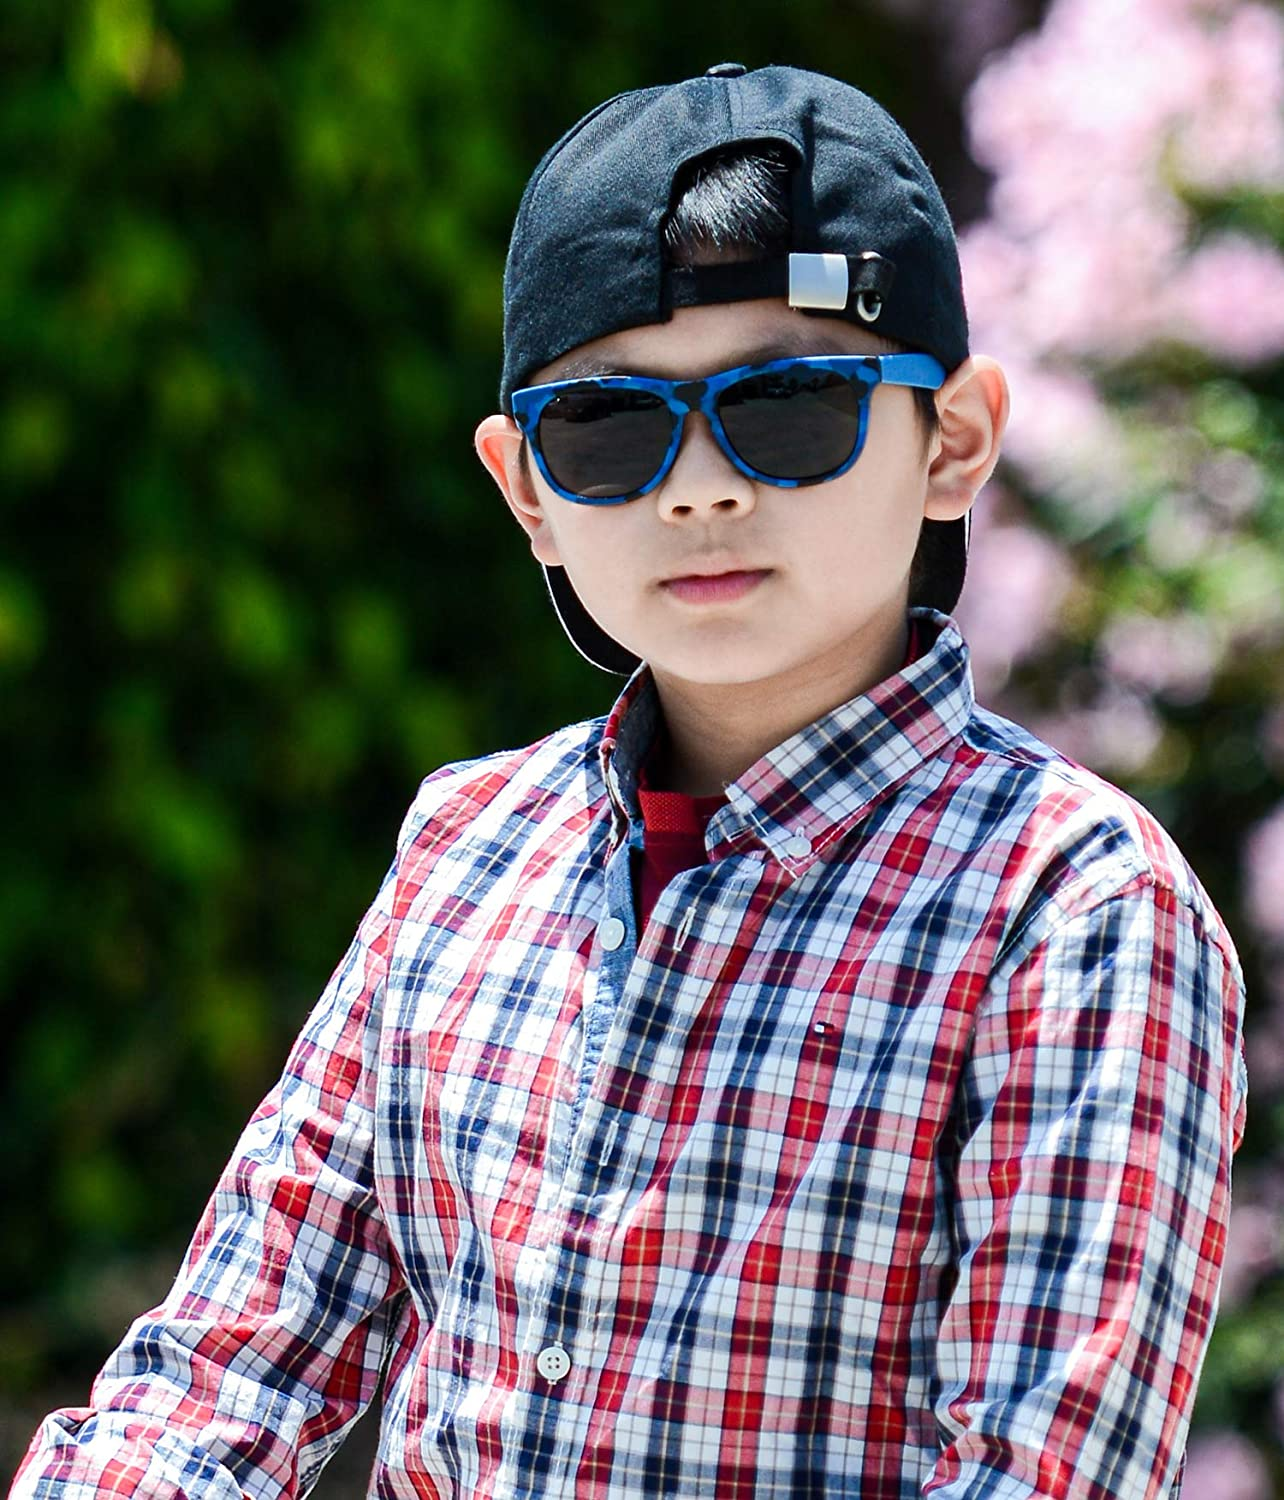 Exquisite Packaging Sunglasses for Kids Gift Idea for Boys Girls Age 3-10